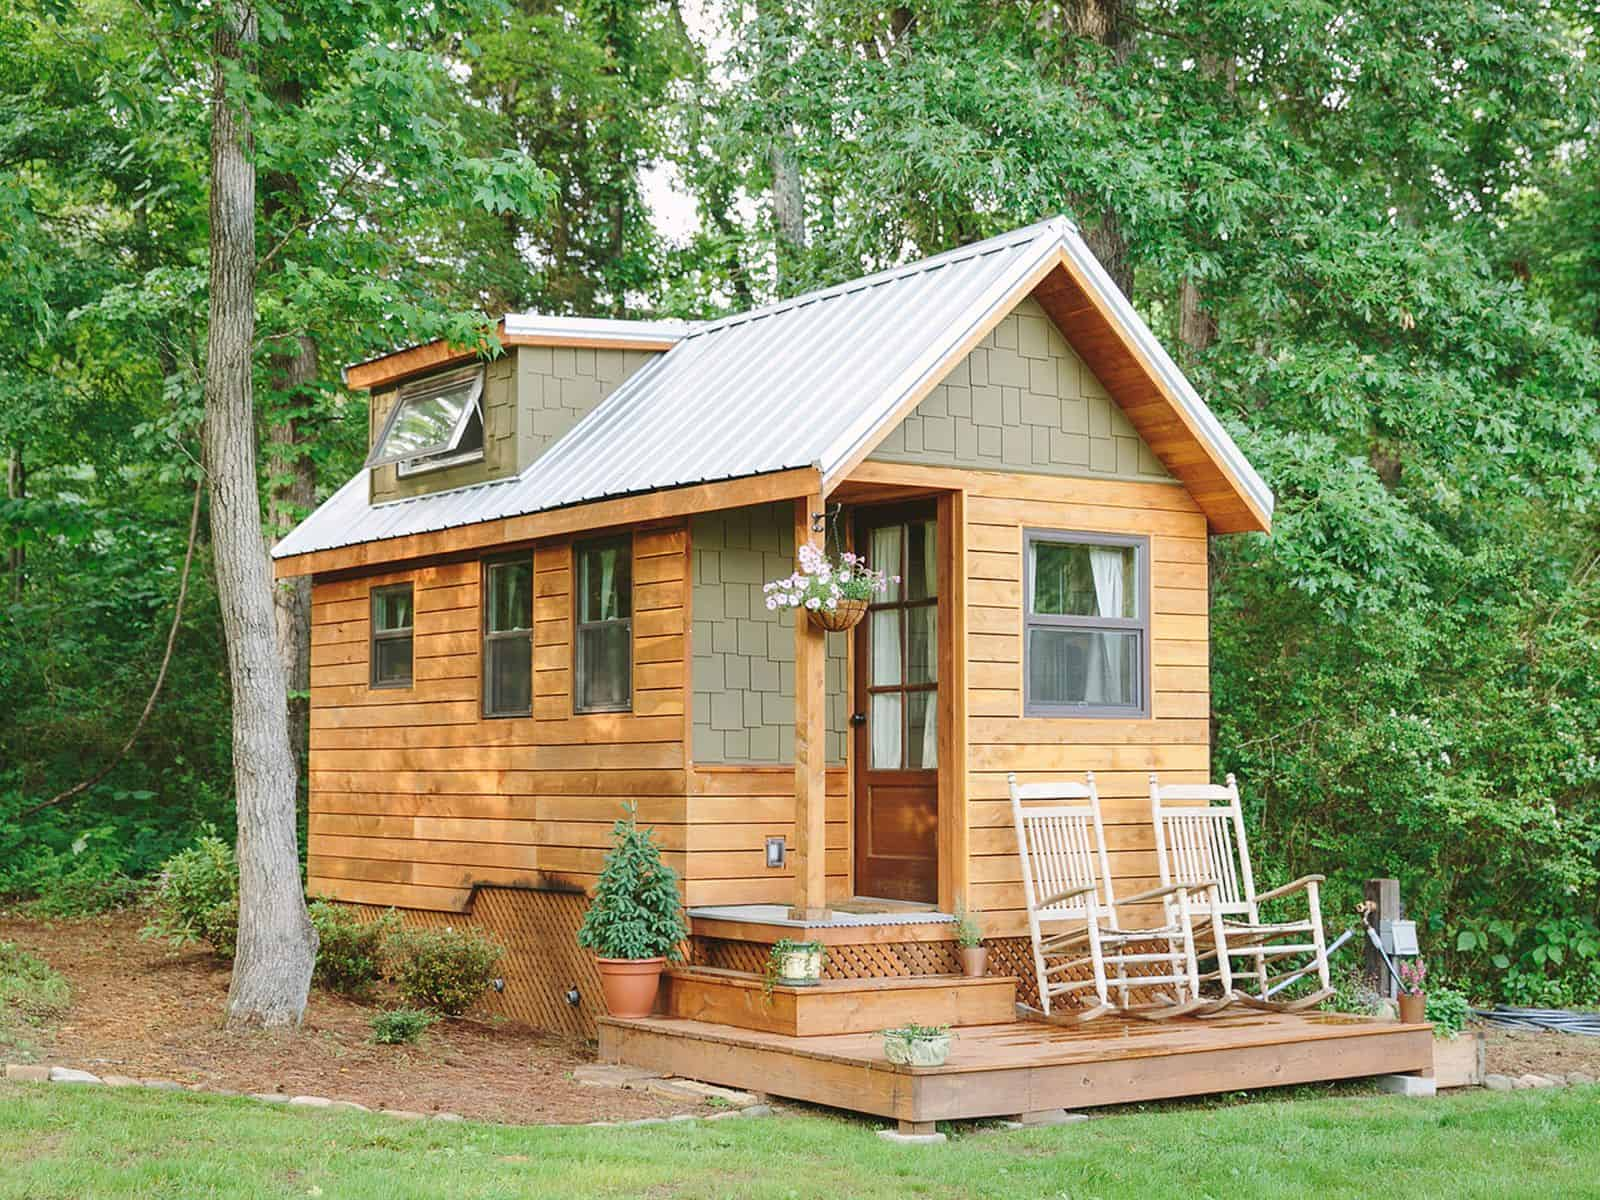 Extremely tiny homes minimalistic living in style Small farmhouse